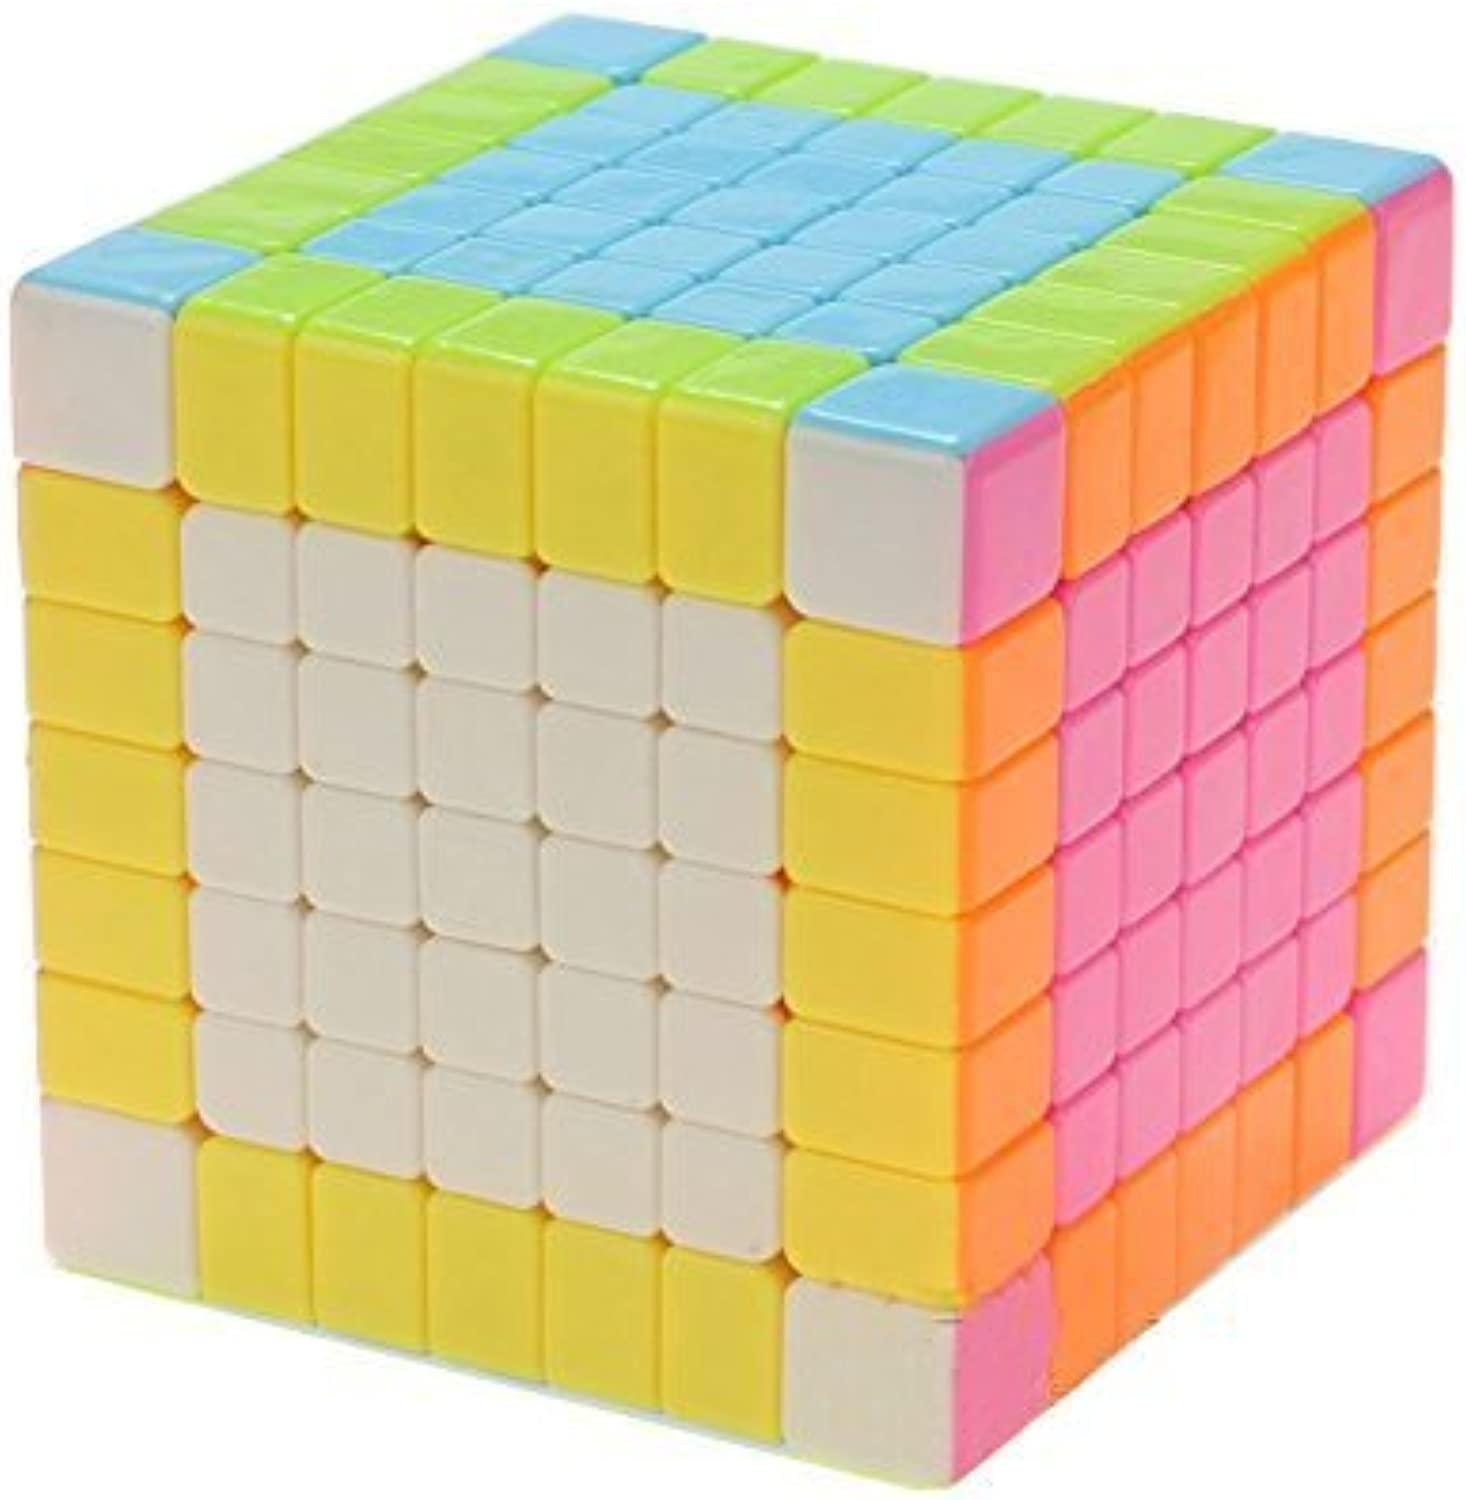 Qm-h 7x7x7 Speed Puzzle Magic Cube 6-color Stickerless Pink 2.75''